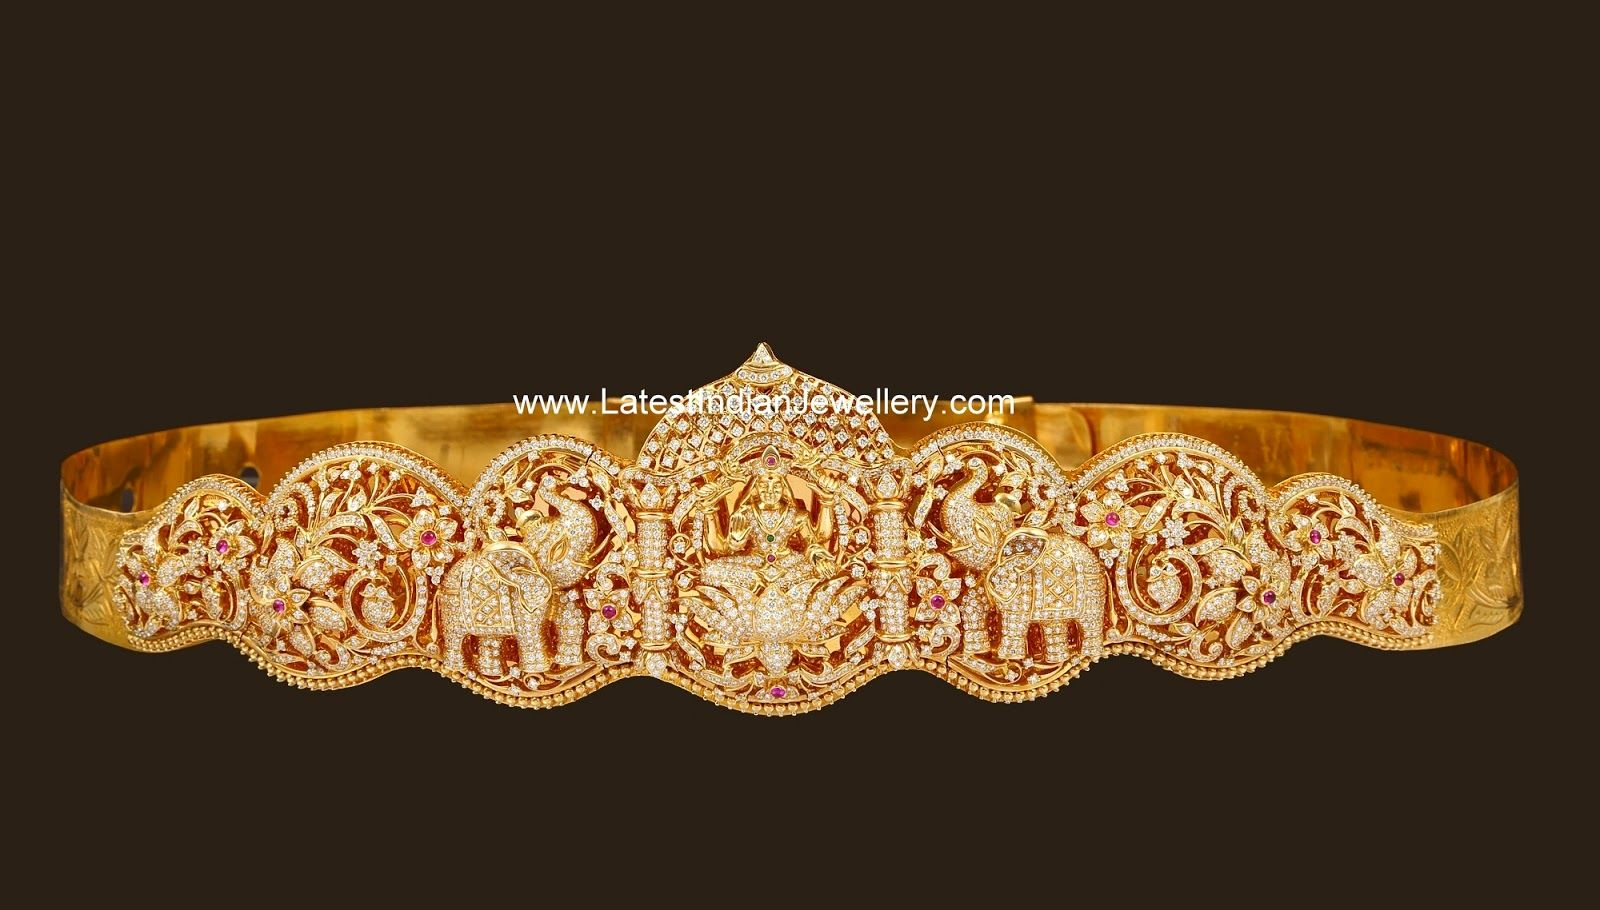 Gold vaddanam oddiyanam kammarpatta waisbelt designs south indian - Vaddanam Gold Vaddanam Waist Belt Pinterest Wedding Jewelry Indian Jewelry And Gold